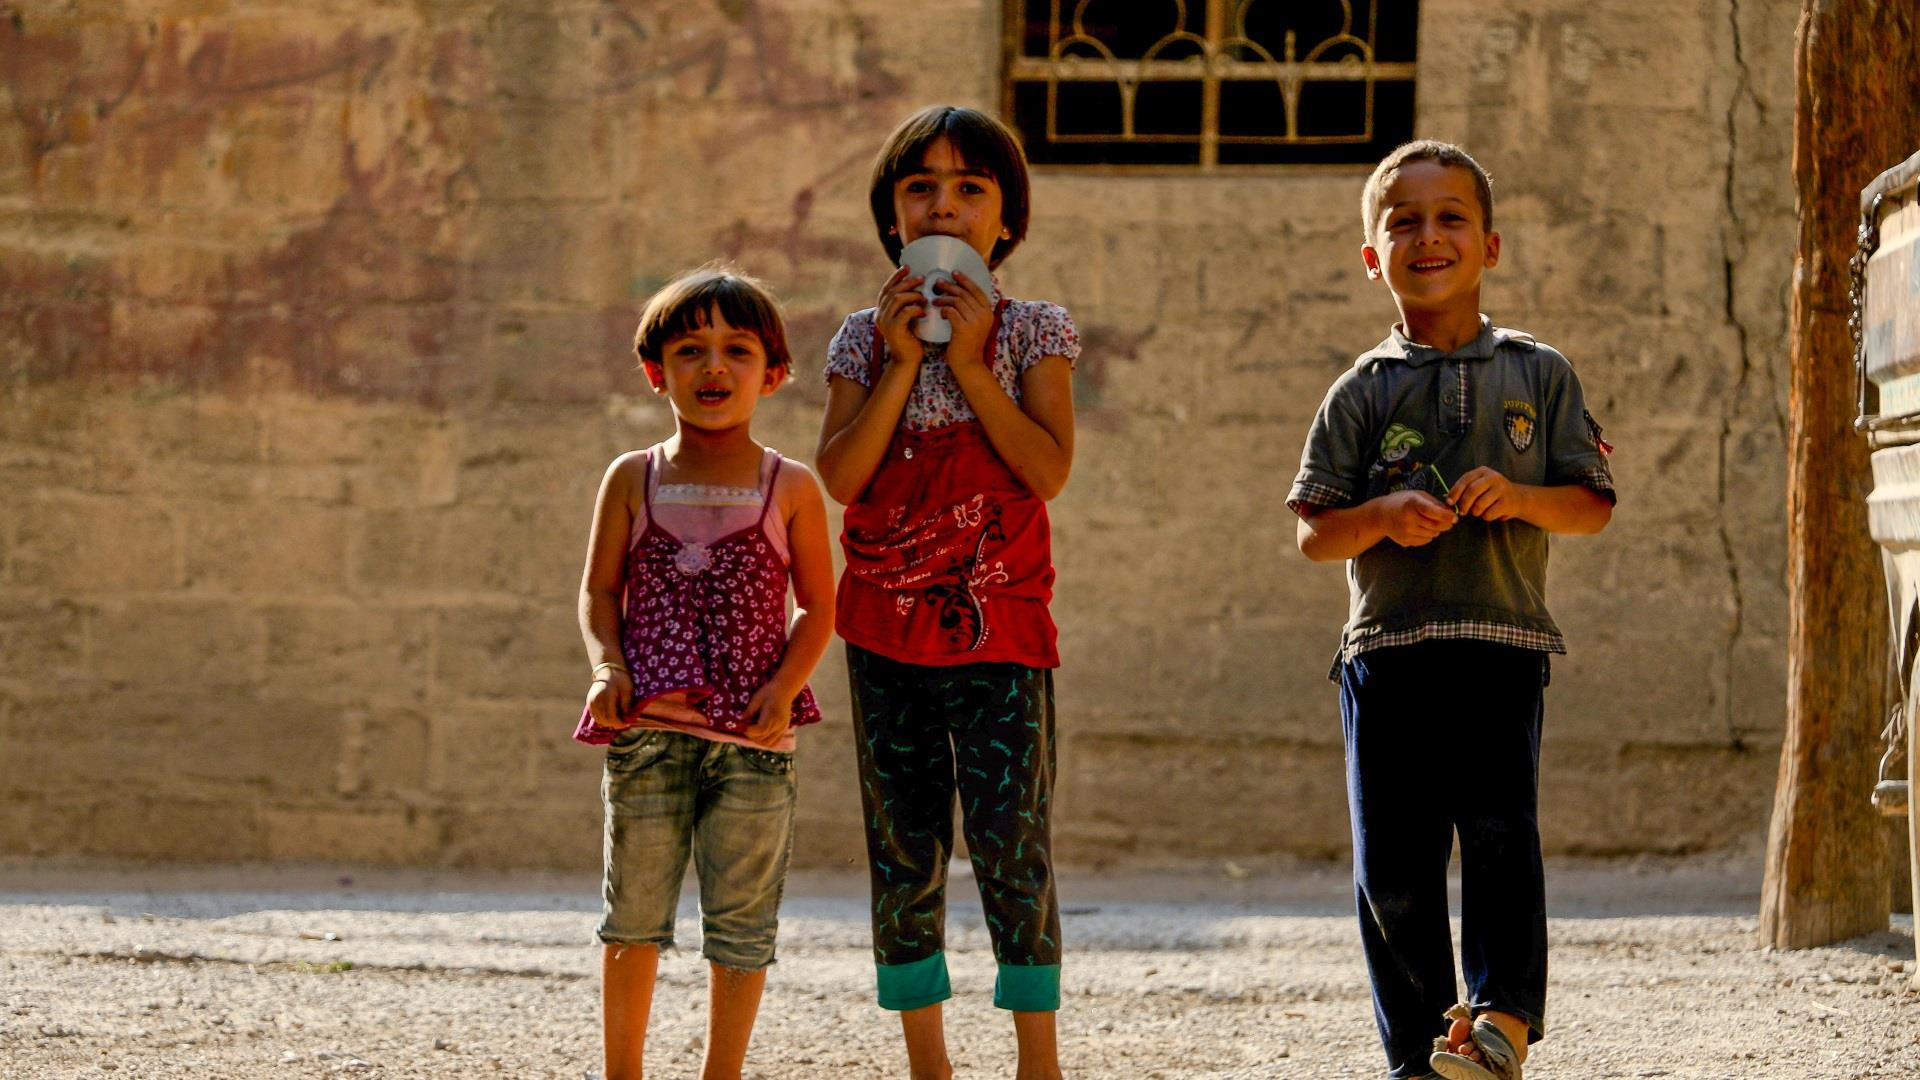 8 Startling Facts About the Children of Syria - NBC News